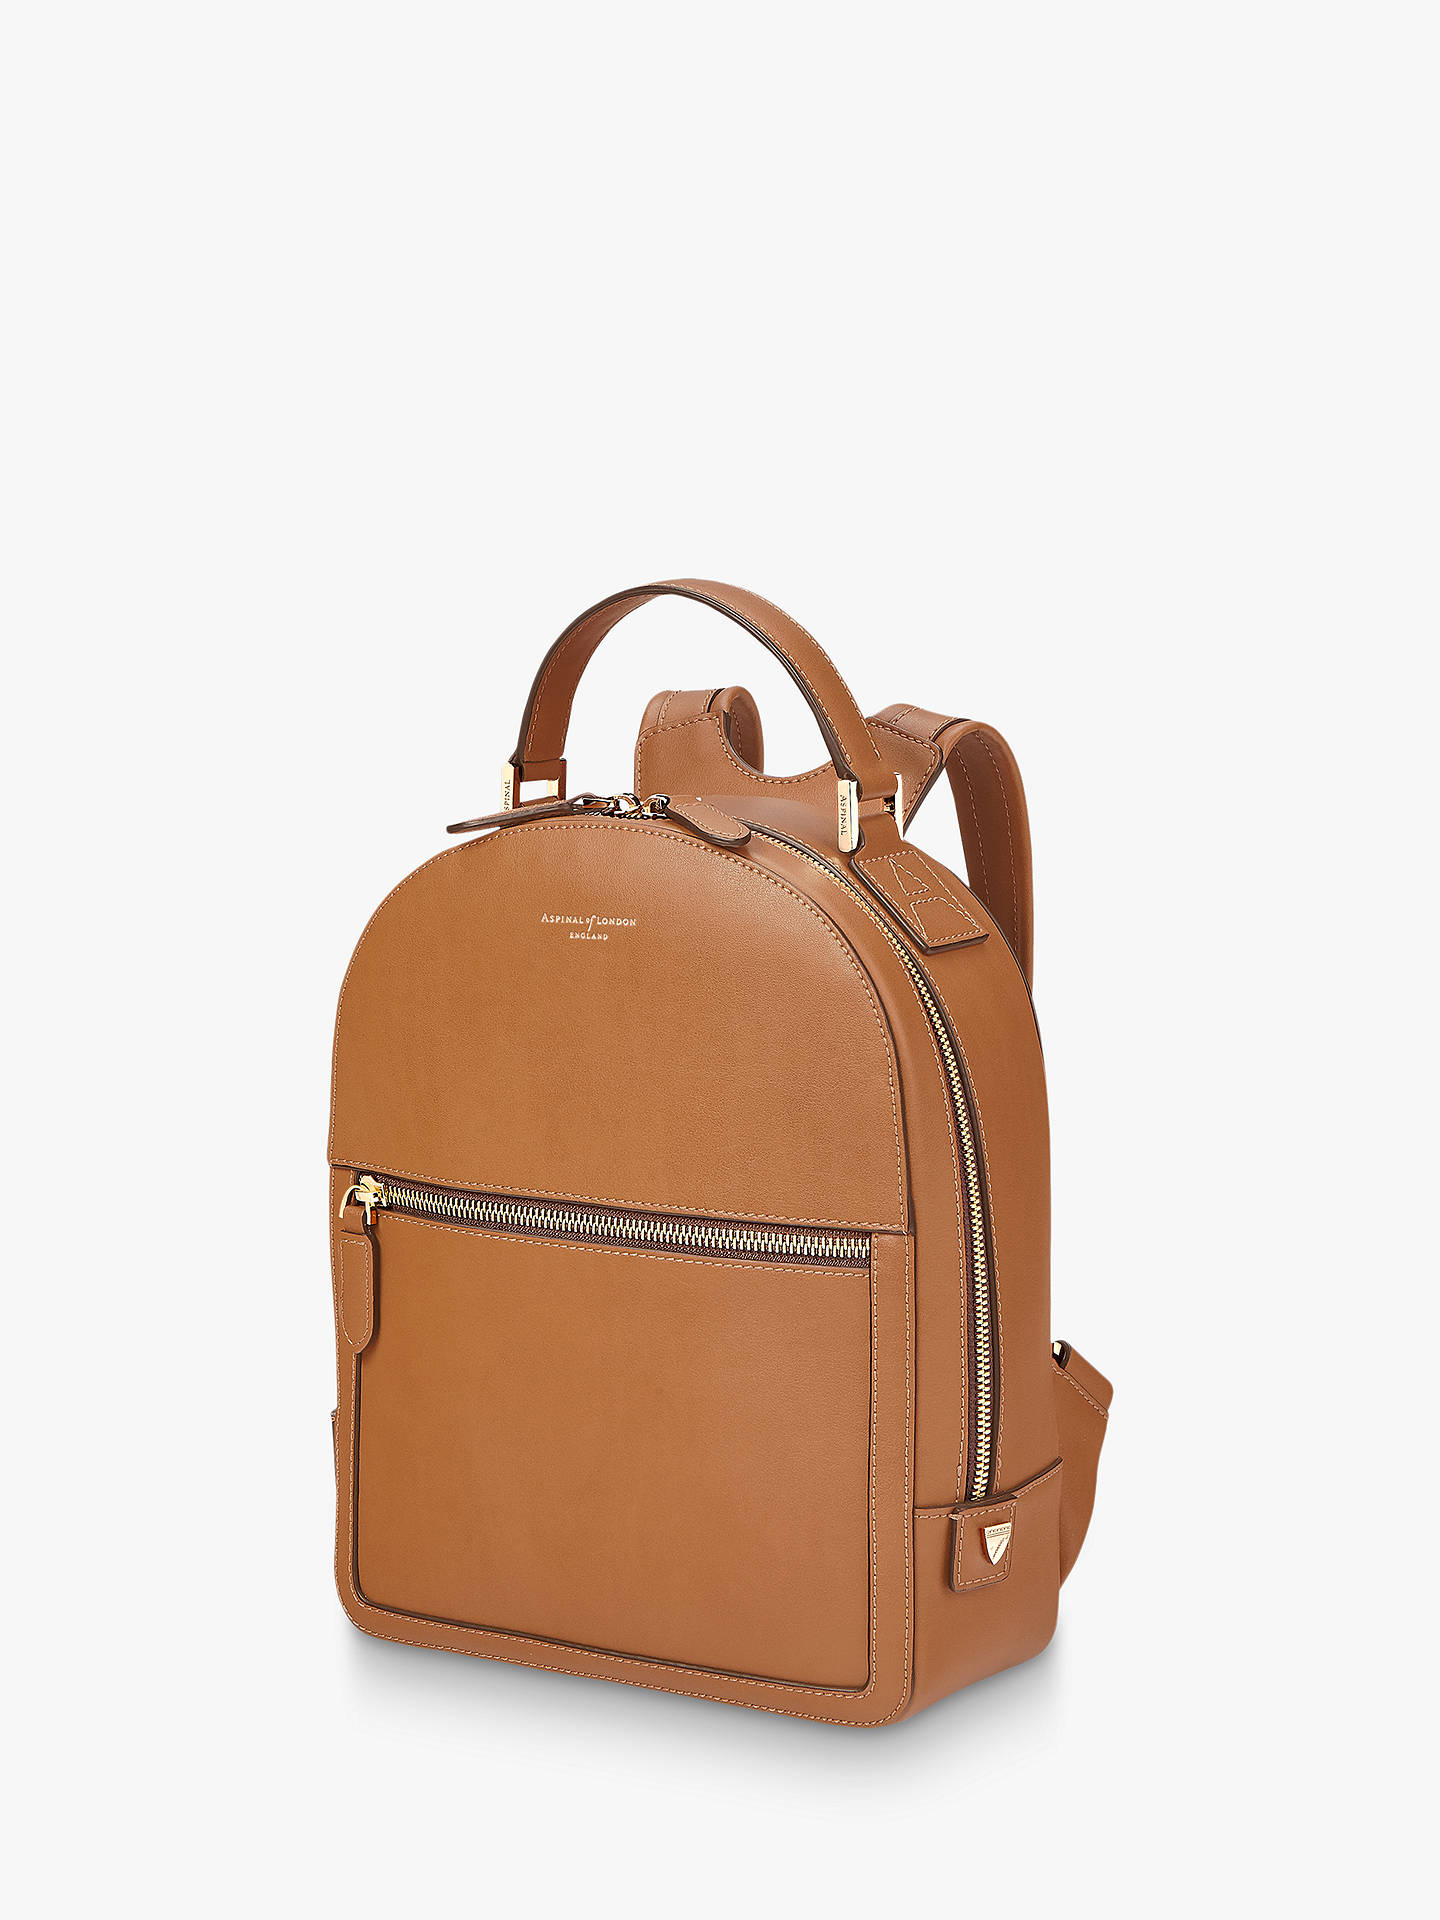 BuyAspinal of London Small Mount Street Leather Backpack, Tan Online at johnlewis.com